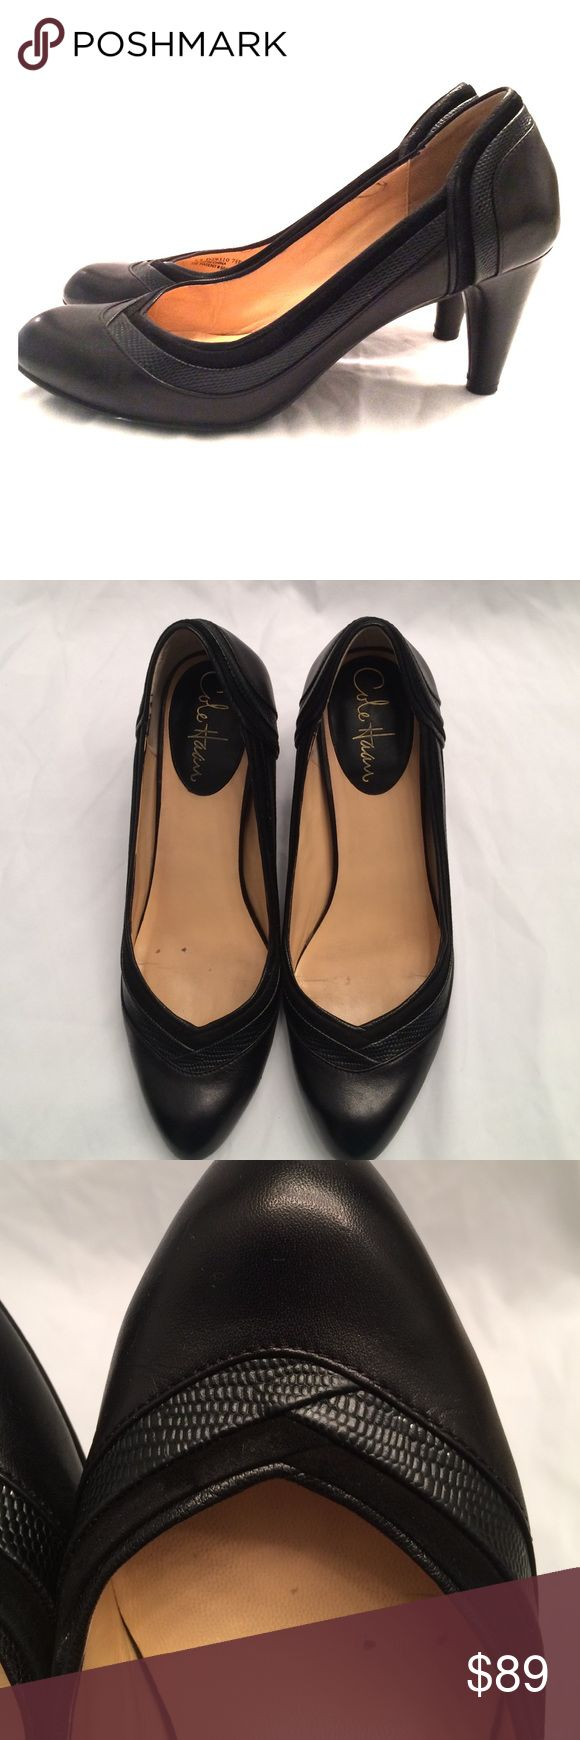 Cole Haan Nike Air Pumps Super comfortable with their Nike air technology and they have detail around whole shoe. Barely used size 7.5 with a 3inch heel. Cole Haan Shoes Heels